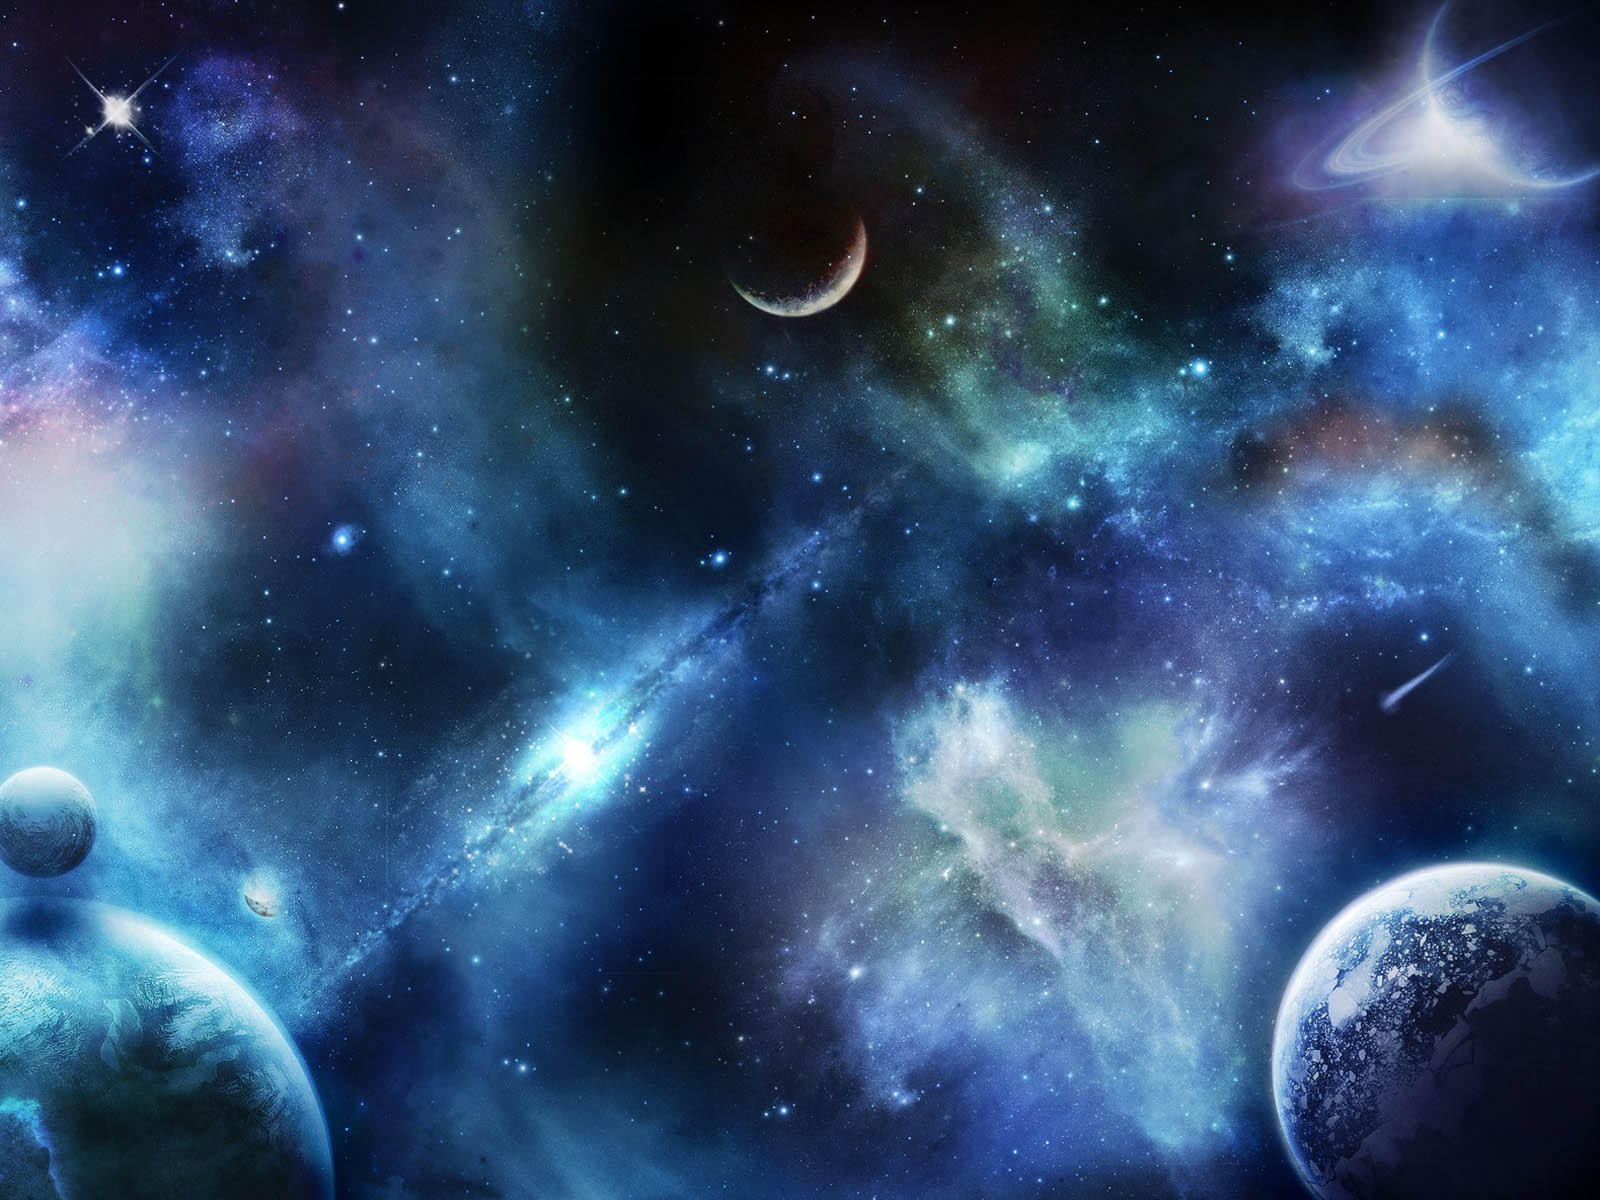 Tag Outer Space Wallpapers Images Photos Pictures and Backgrounds 1600x1200